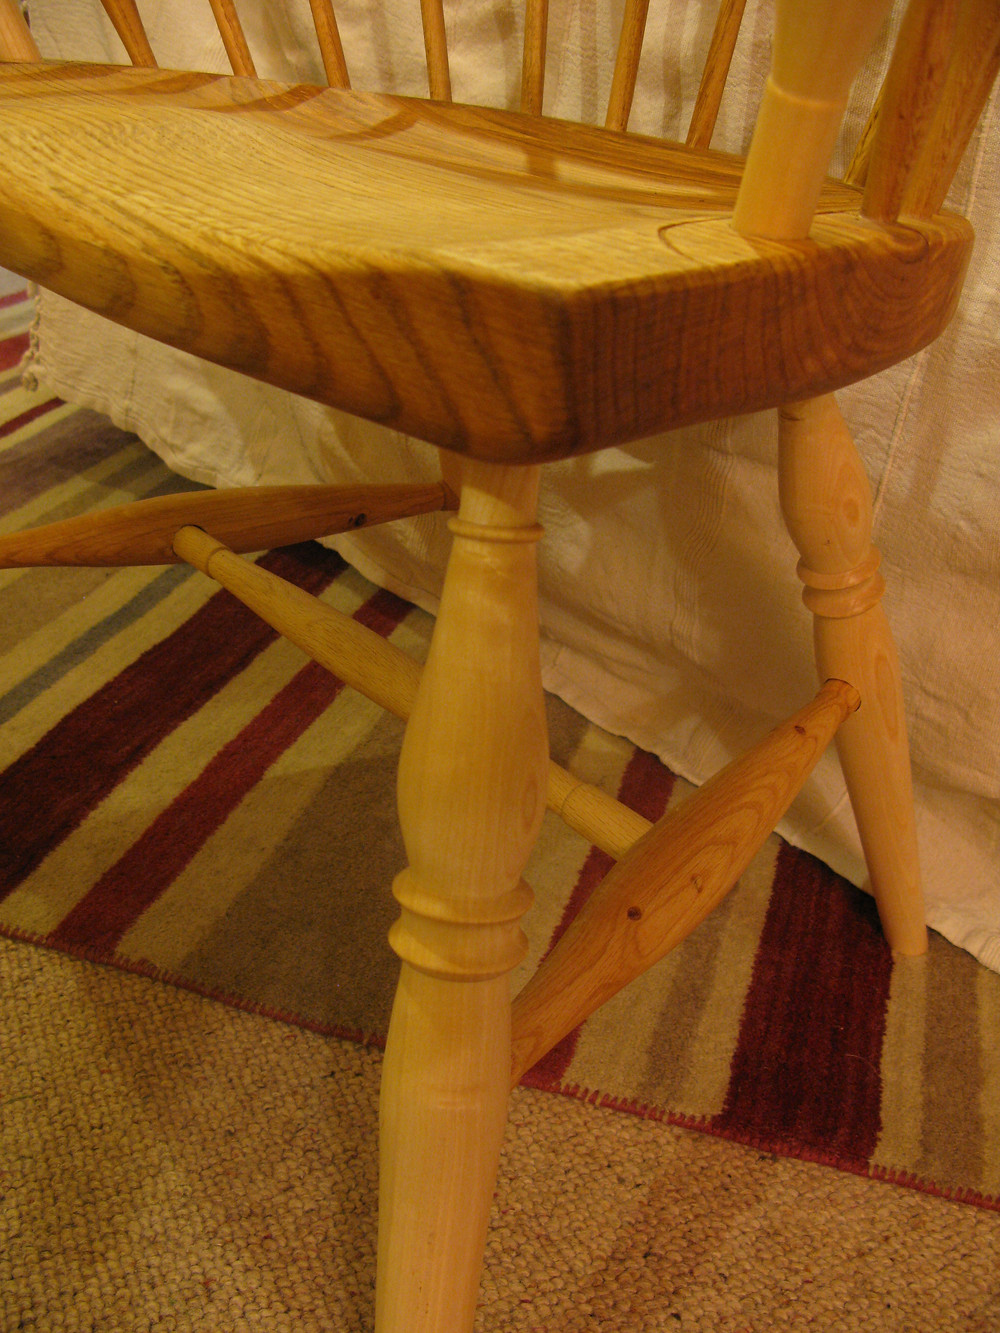 Captains chair joinery detail